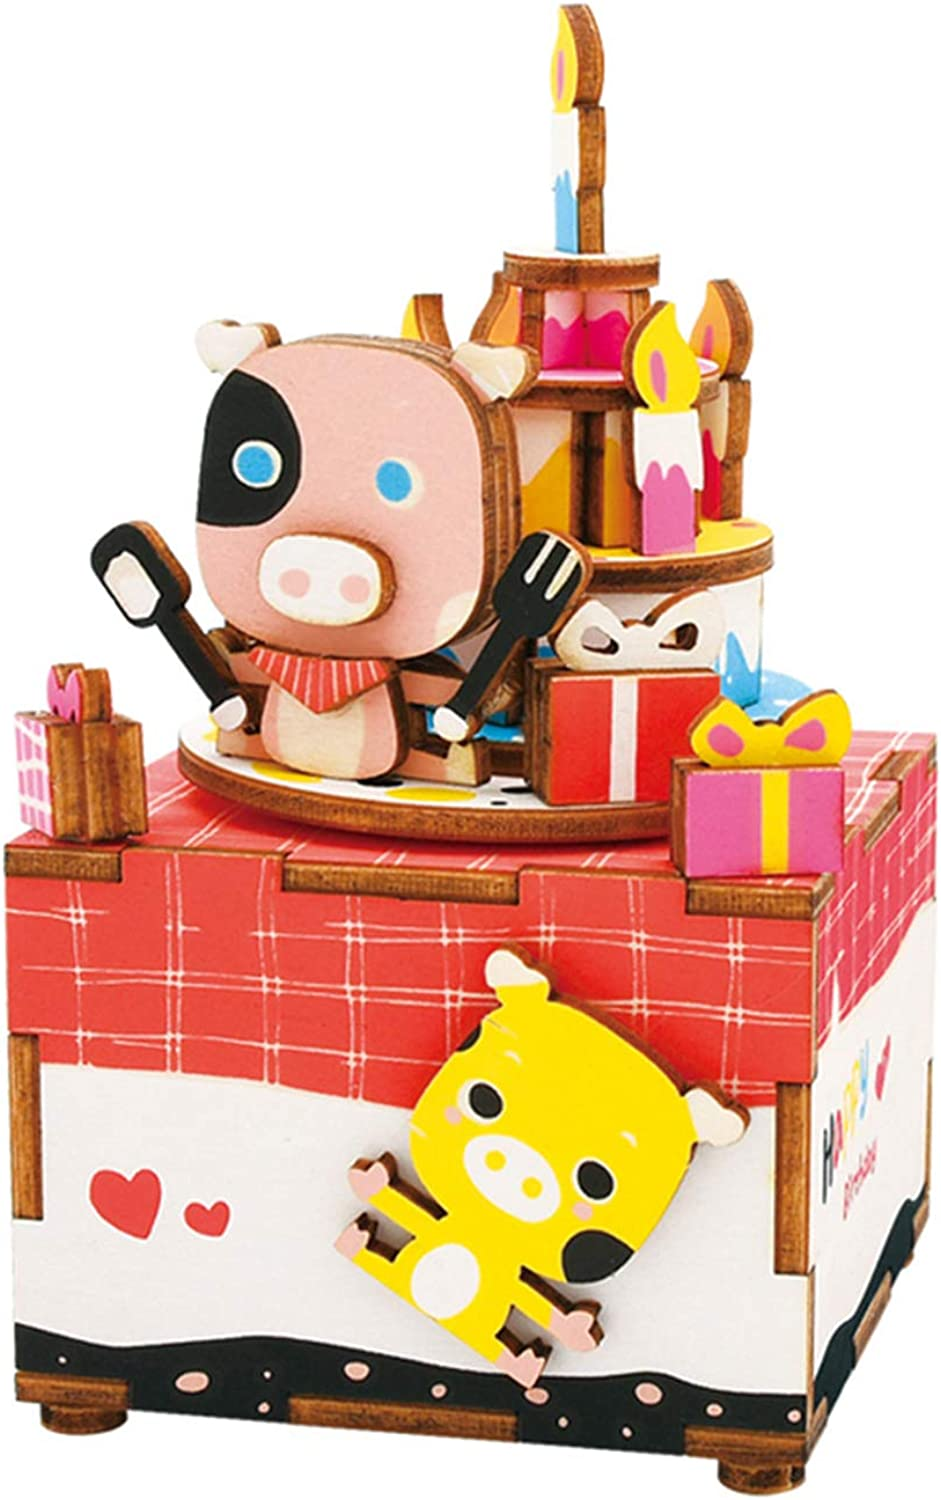 AINIM Handmade Music Box, 3D Cartoon Pig Wooden Jigsaw Puzzle, Home Decoration, Creative Gift